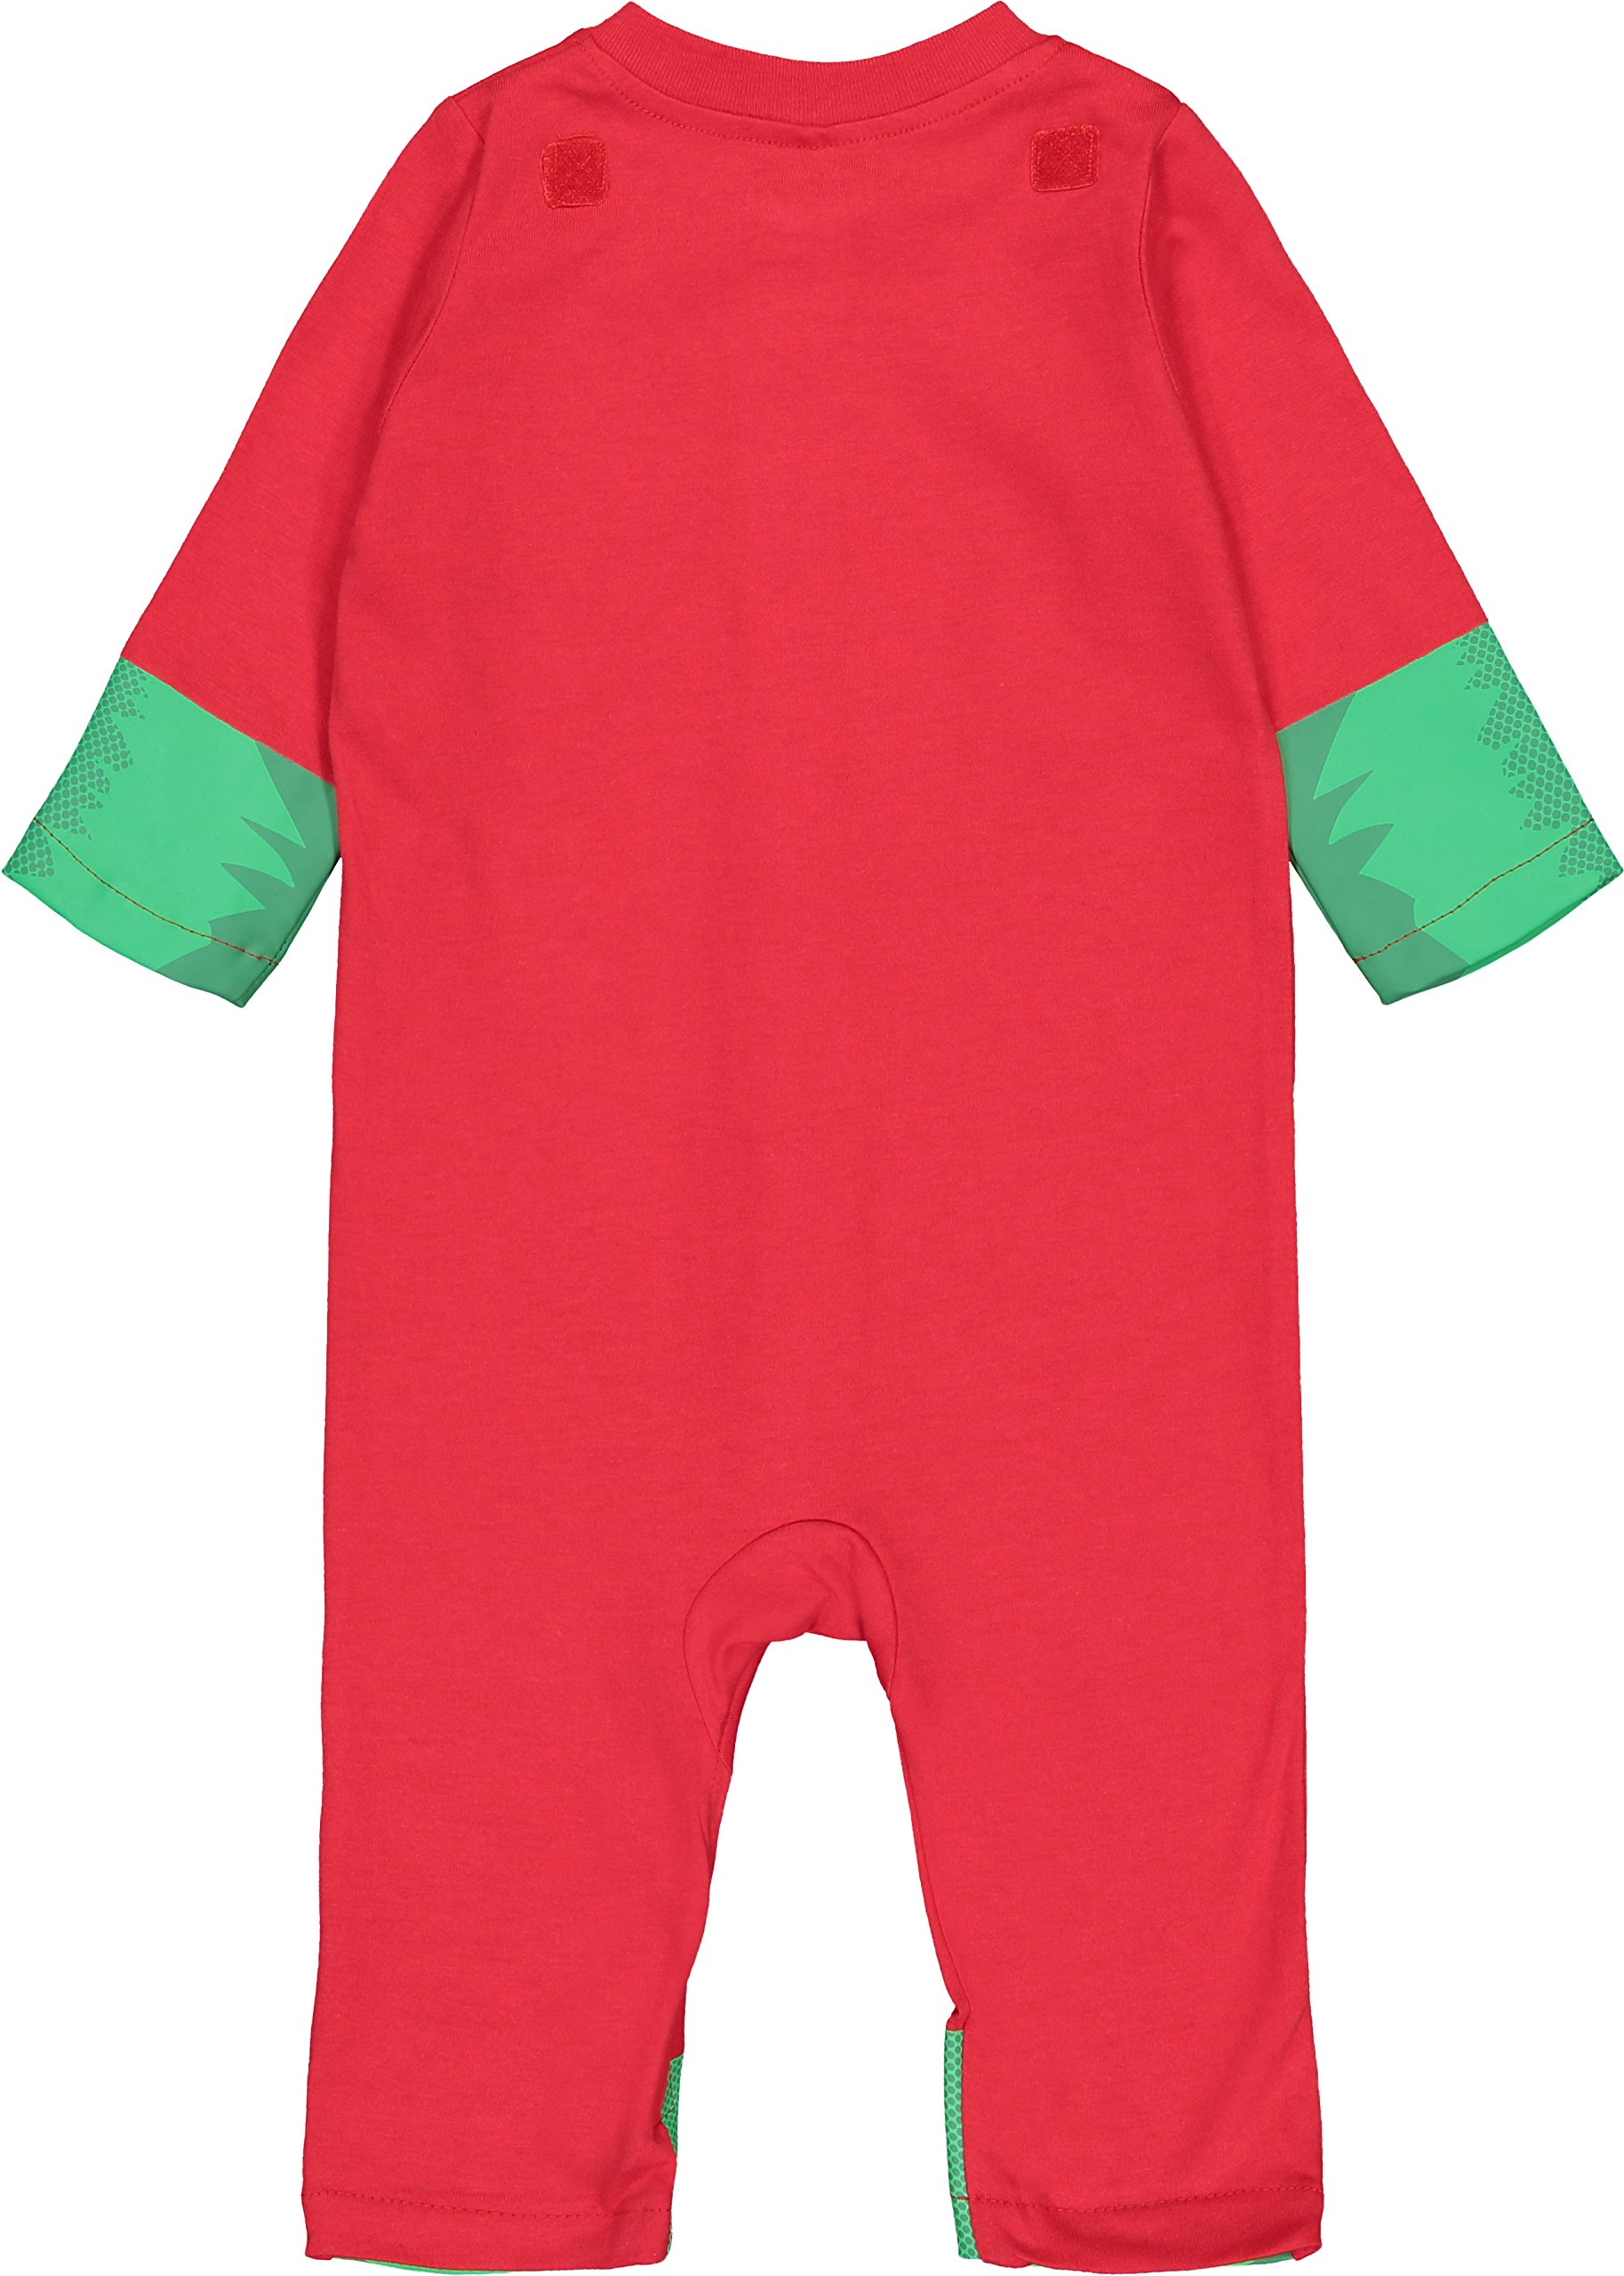 Warner Bros. Justice League Robin Baby Boys' Zip-Up Caped Costume Coverall (18 Months) by Warner Bros. (Image #5)